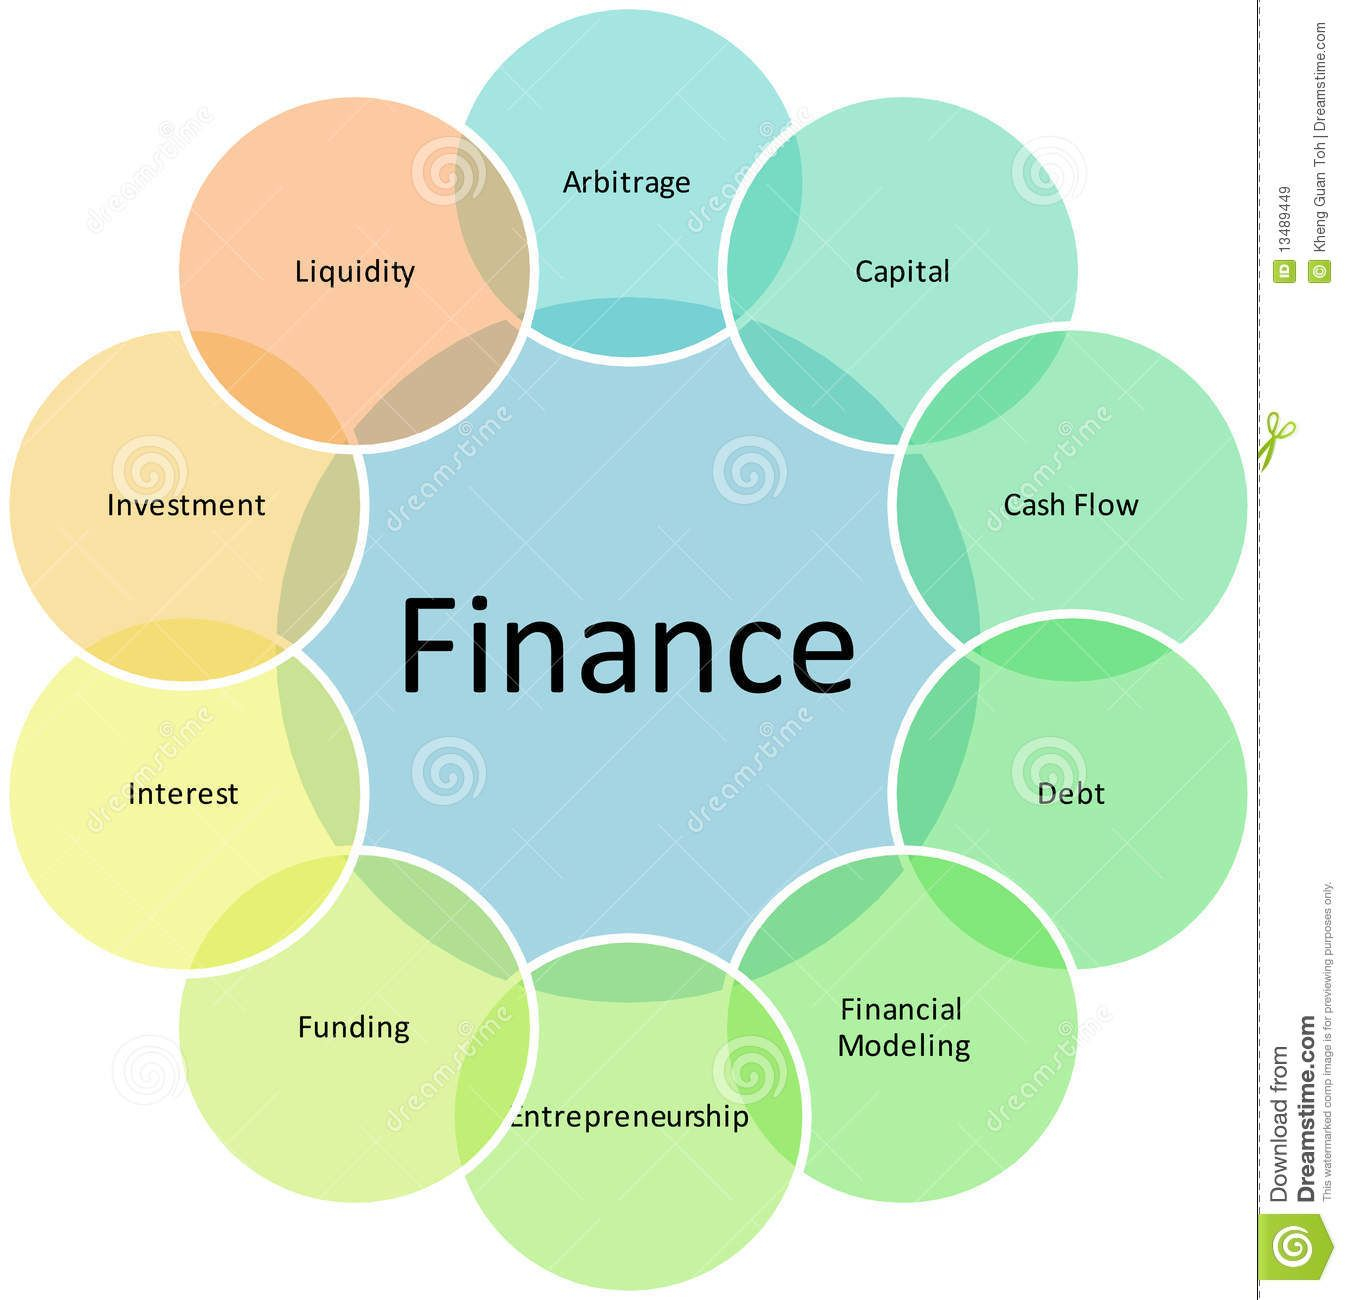 hight resolution of finance components business diagram stock illustration